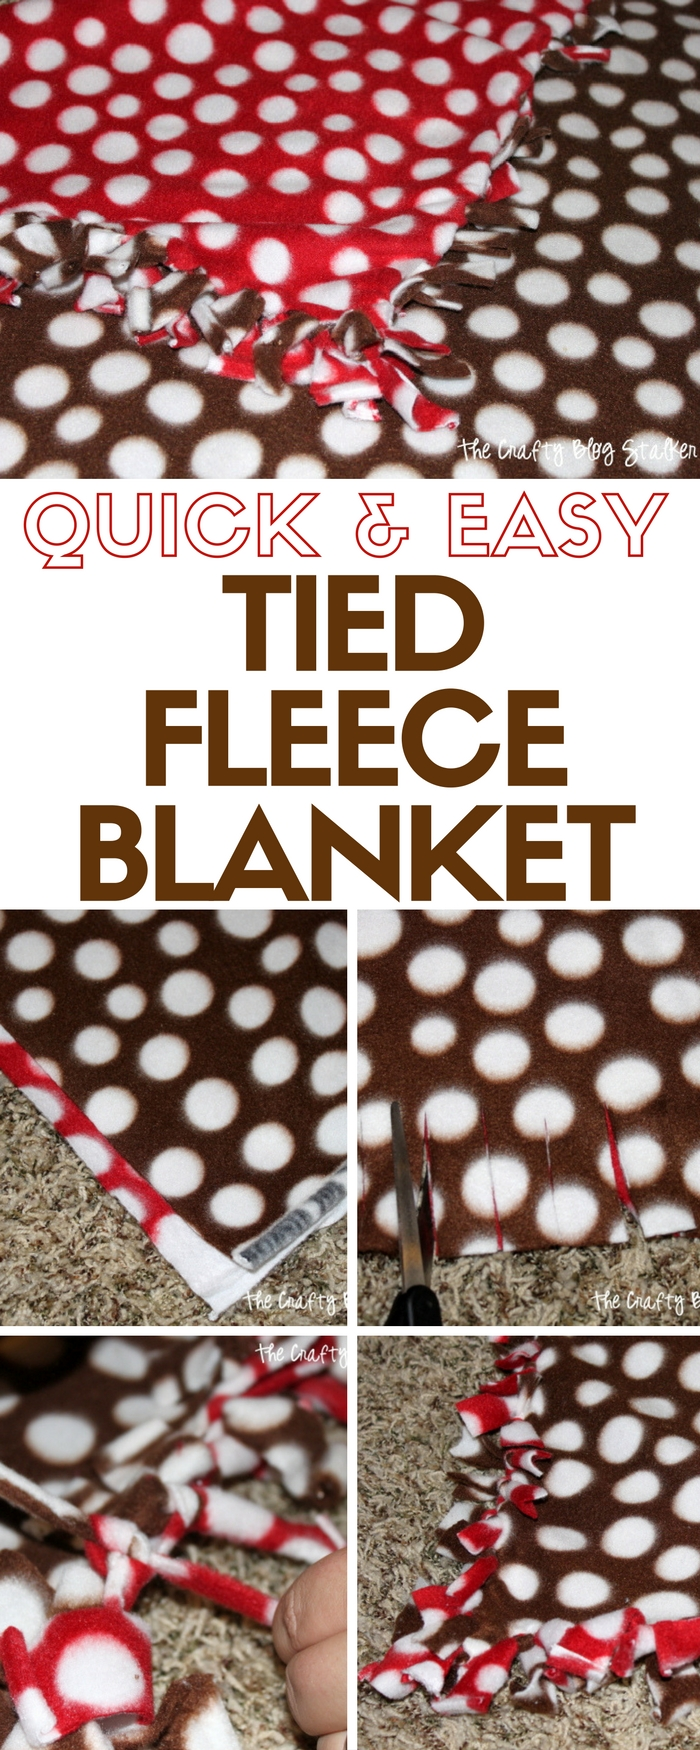 How to Make a Quick and Easy Tied Fleece Blanket